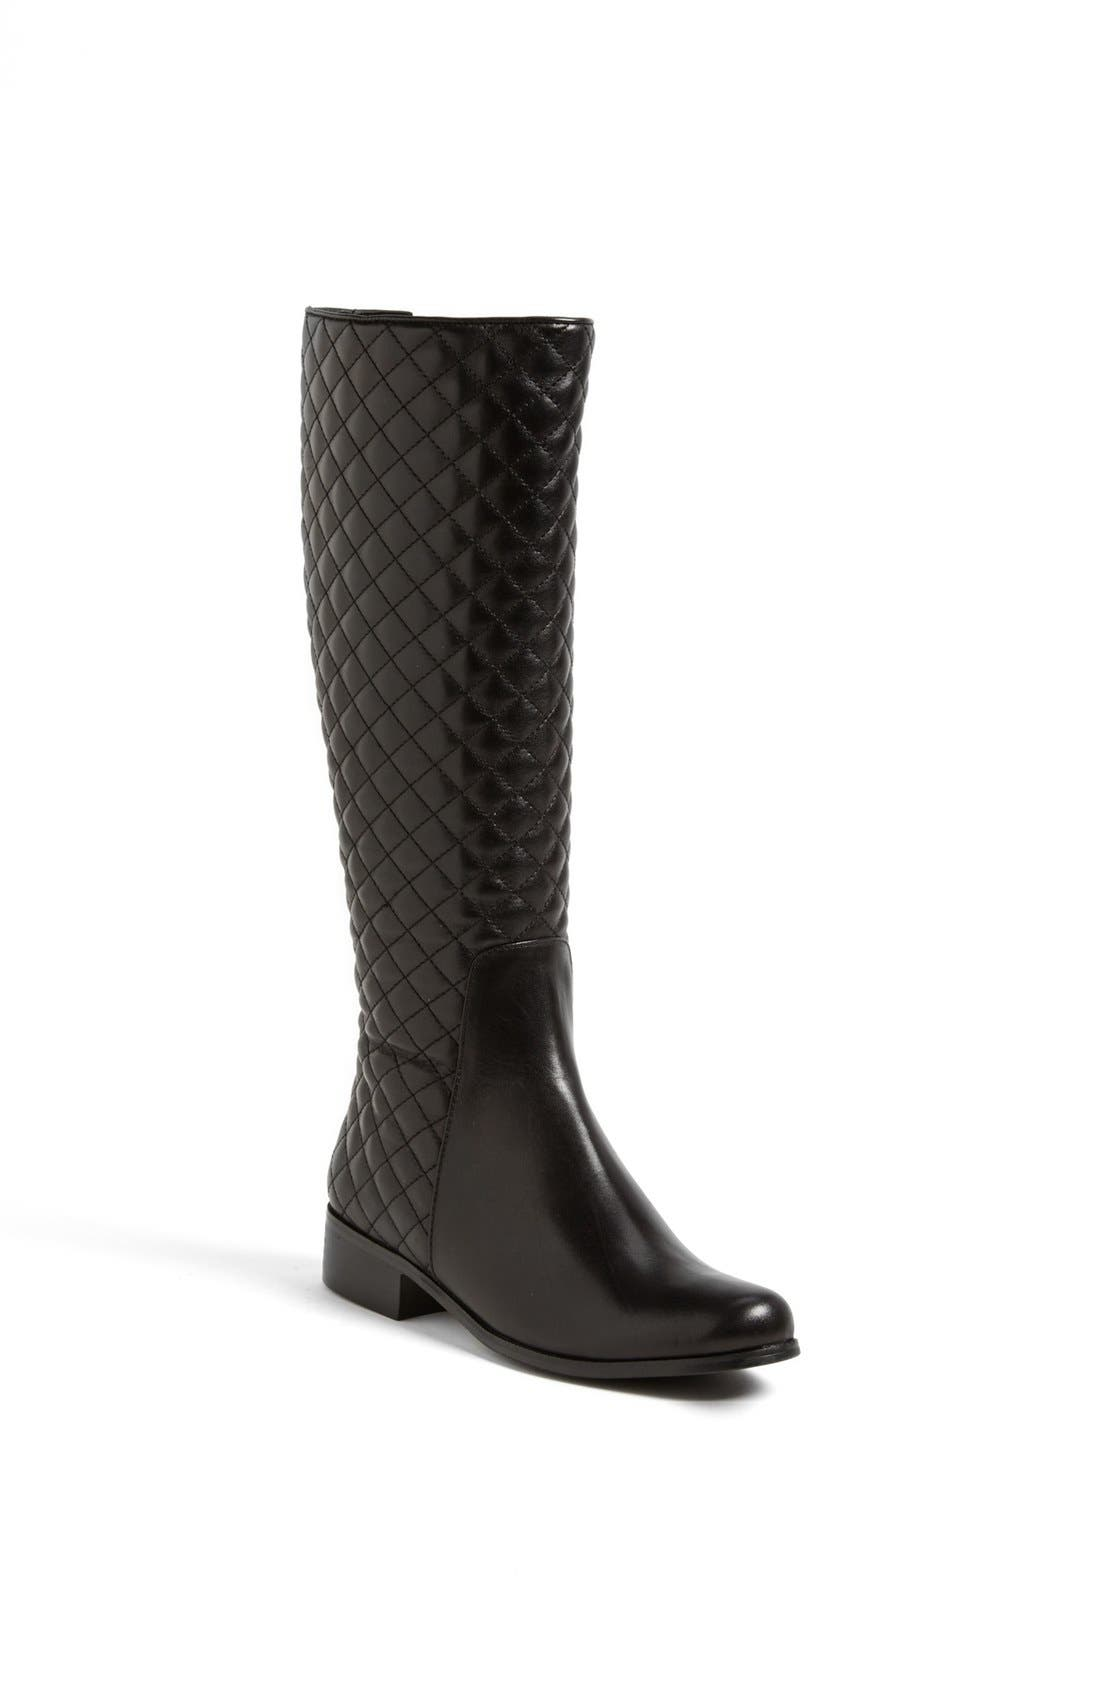 Alternate Image 1 Selected - VANELi 'Radio' Riding Boot